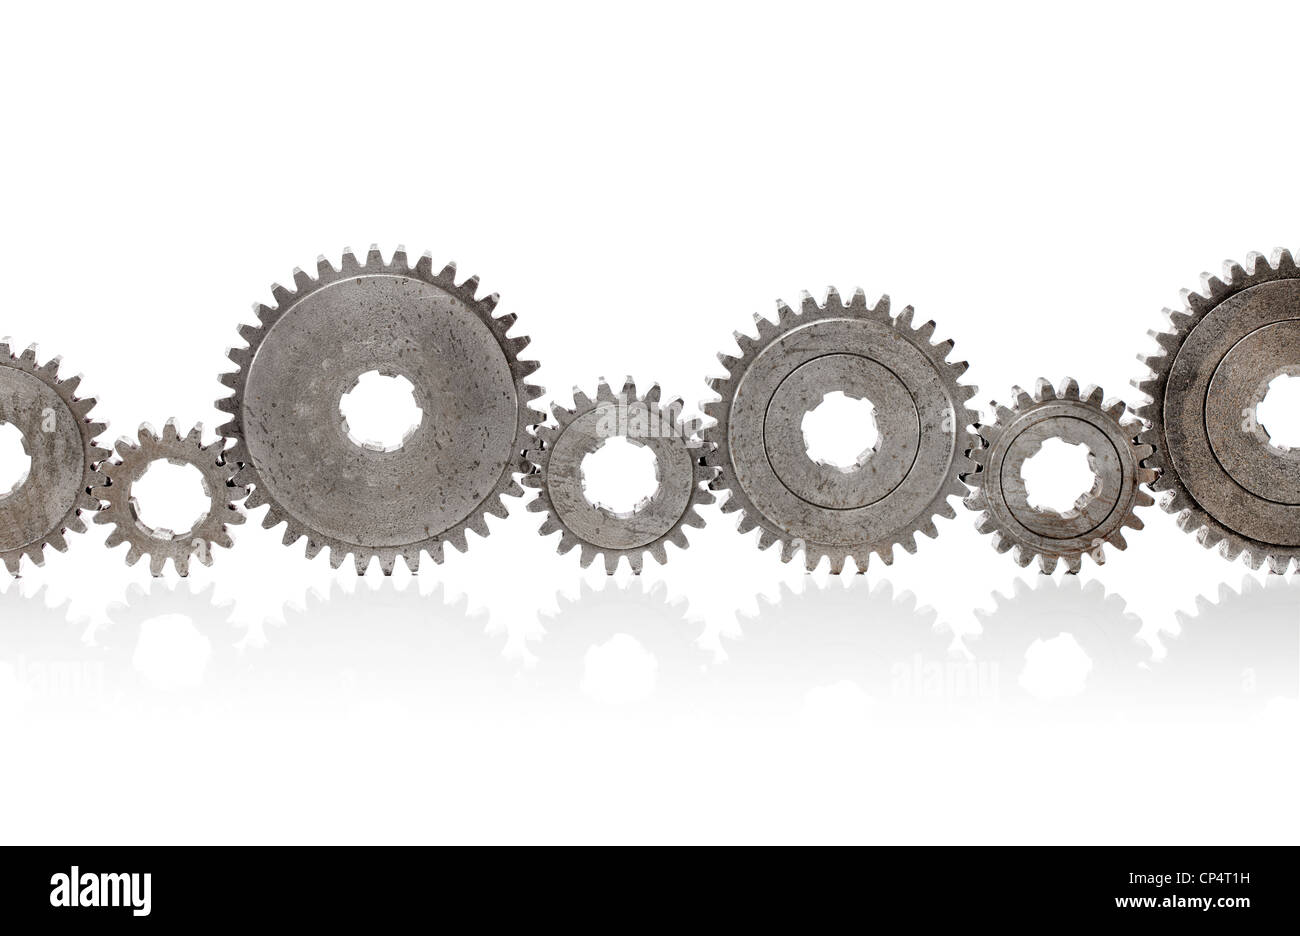 Old metallic cog gears arranged in a row. - Stock Image